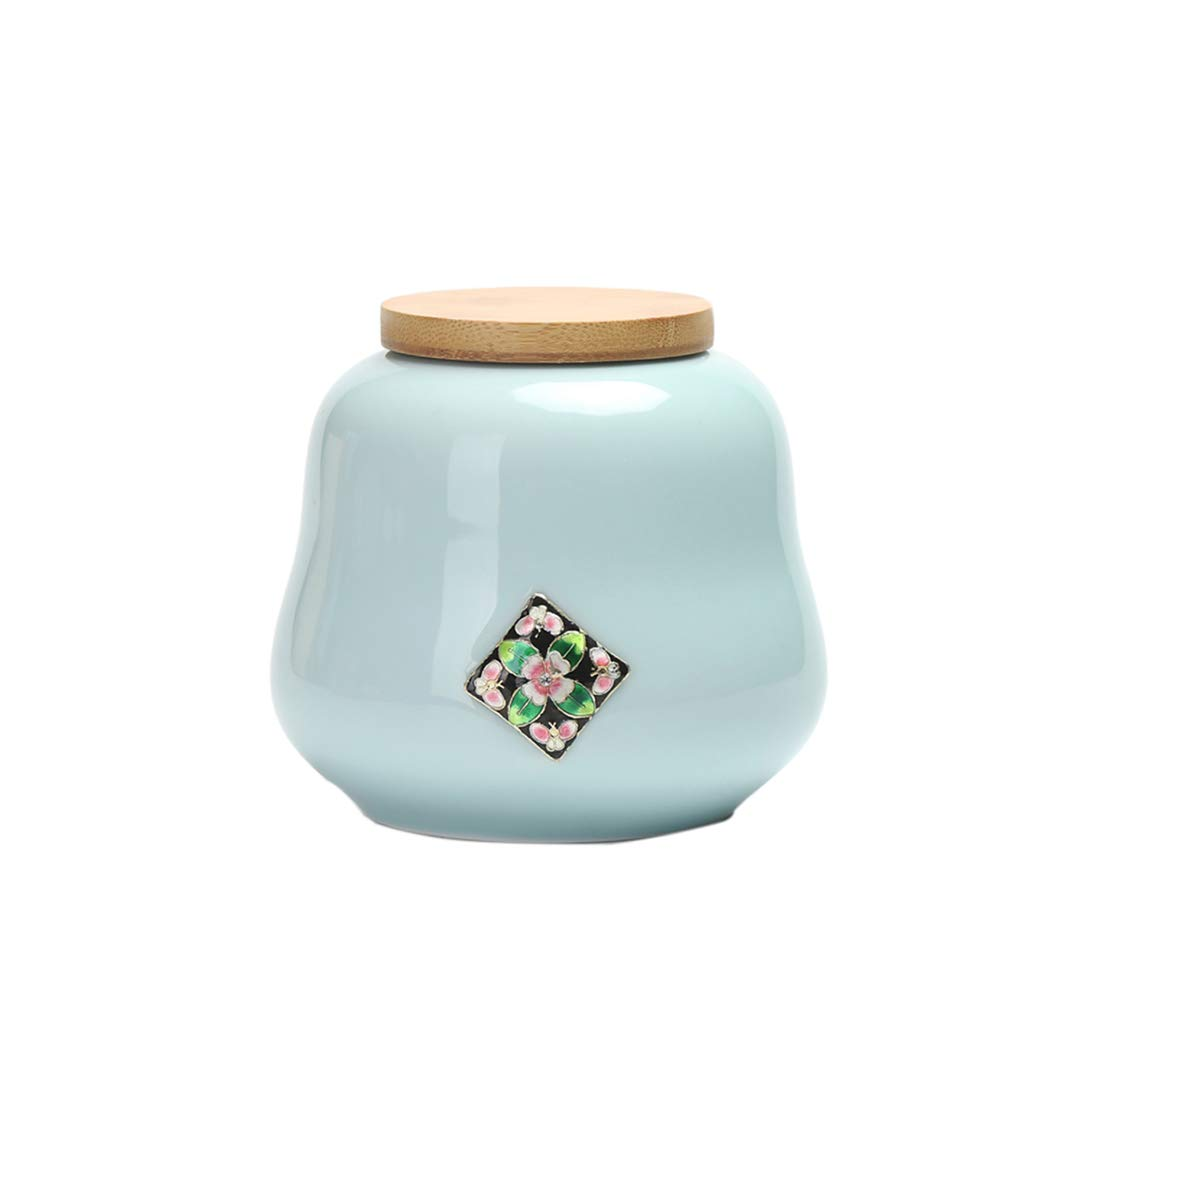 bluee Two-piece bluee Two-piece Runtongshanghang Heavenly Home Pet Keepsake,Pet Urn,Cremation Urns For Pets,Functional Urn,Ceramic Sealed,Moisture Proof,Keepsake Box For Dogs And Cats(bluee) (color   bluee, Size   Two-piece)